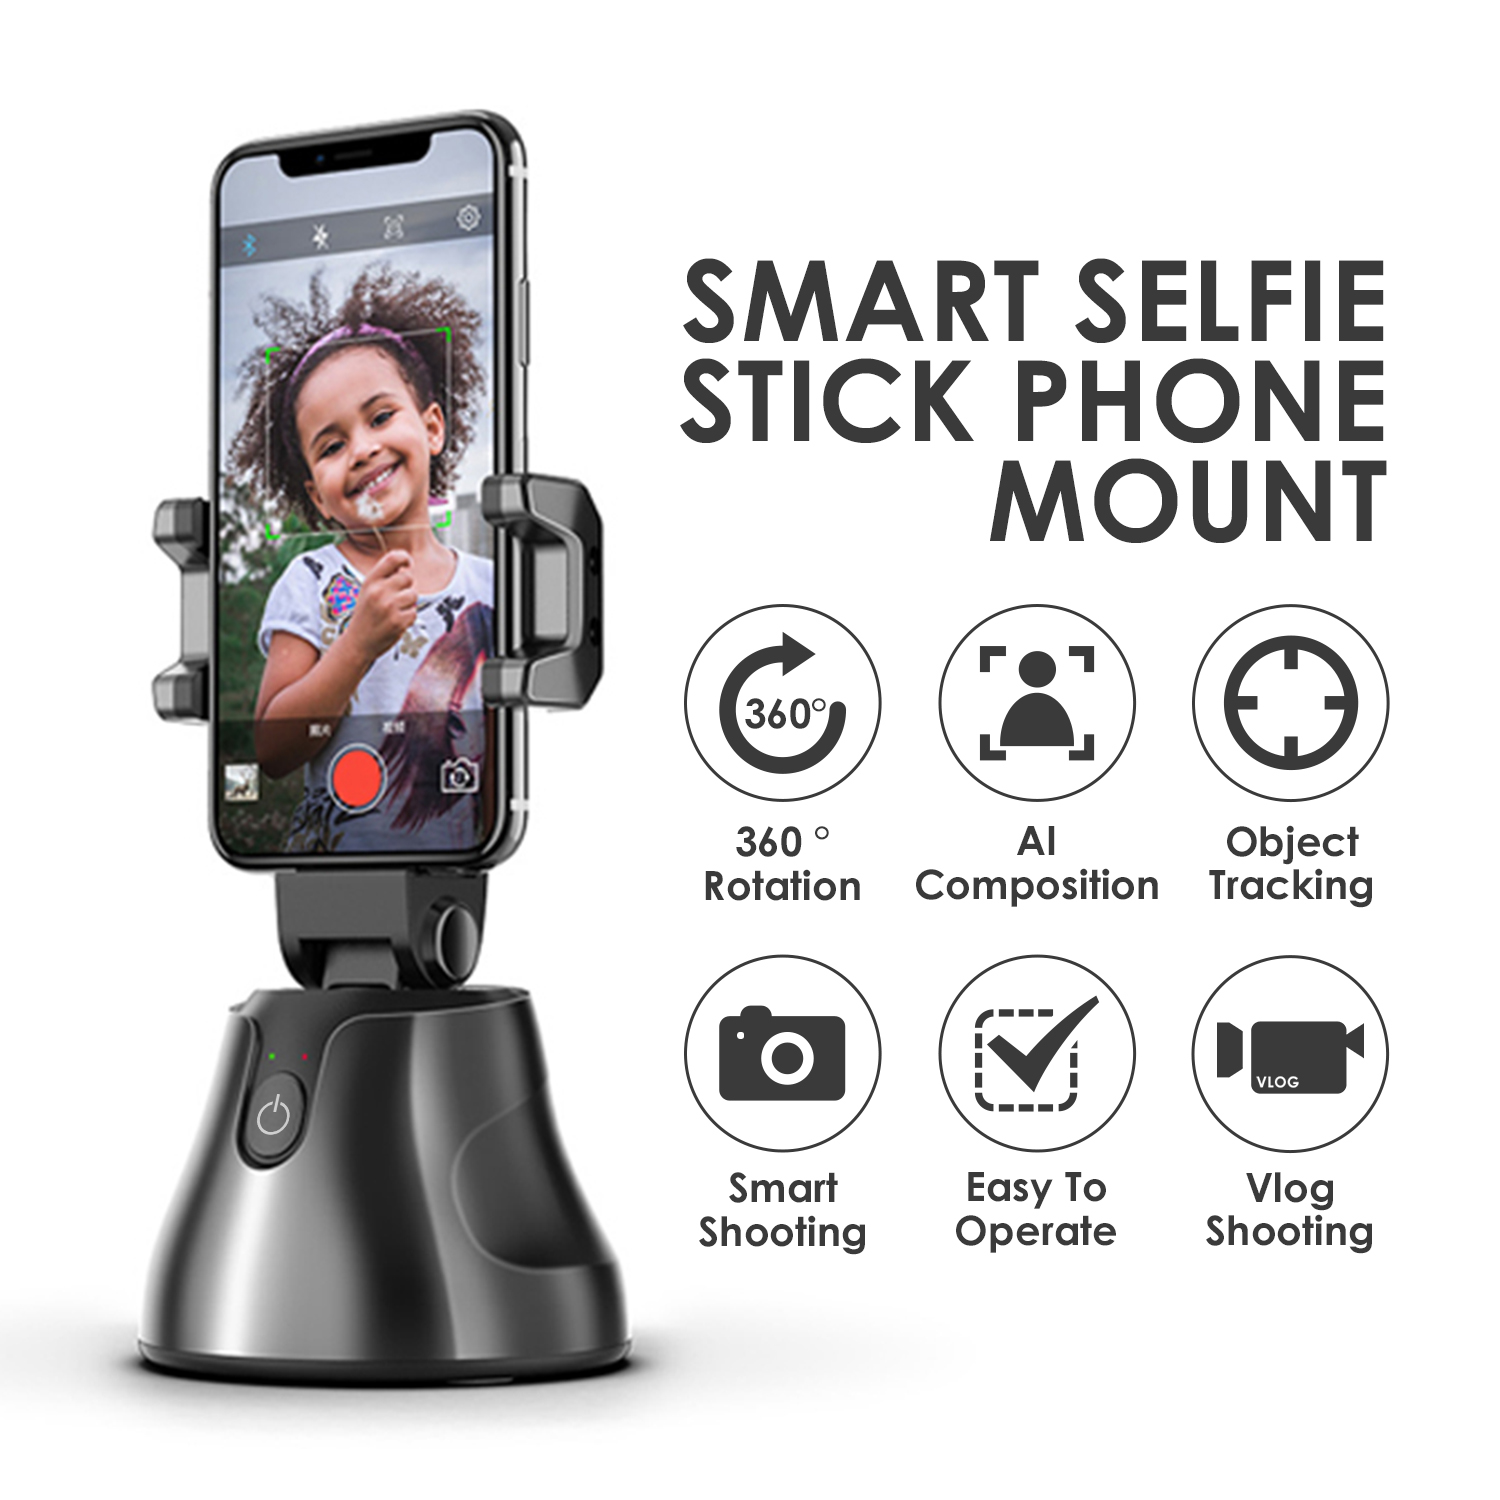 Portable All-in-one Auto Smart Shooting Selfie Stick 360 Rotation Auto Face/Object Tracking Vlog Camera Phone Holder Desk Mount